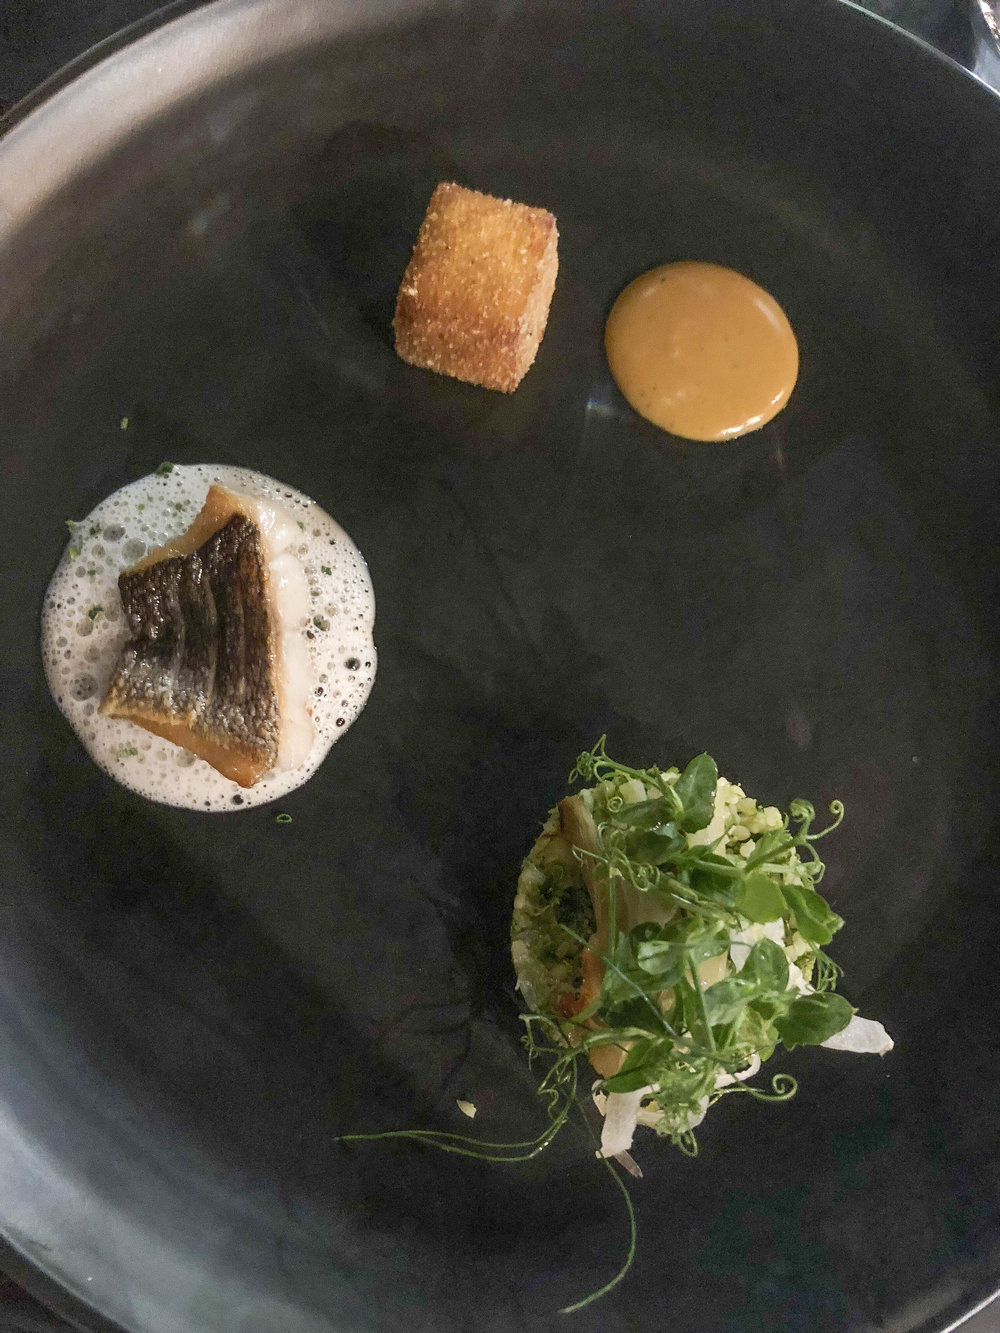 Pan fried fish with lemon tarragon veloute, fried pannise, and the most incredible smoked mussel aioli, served with bulgur